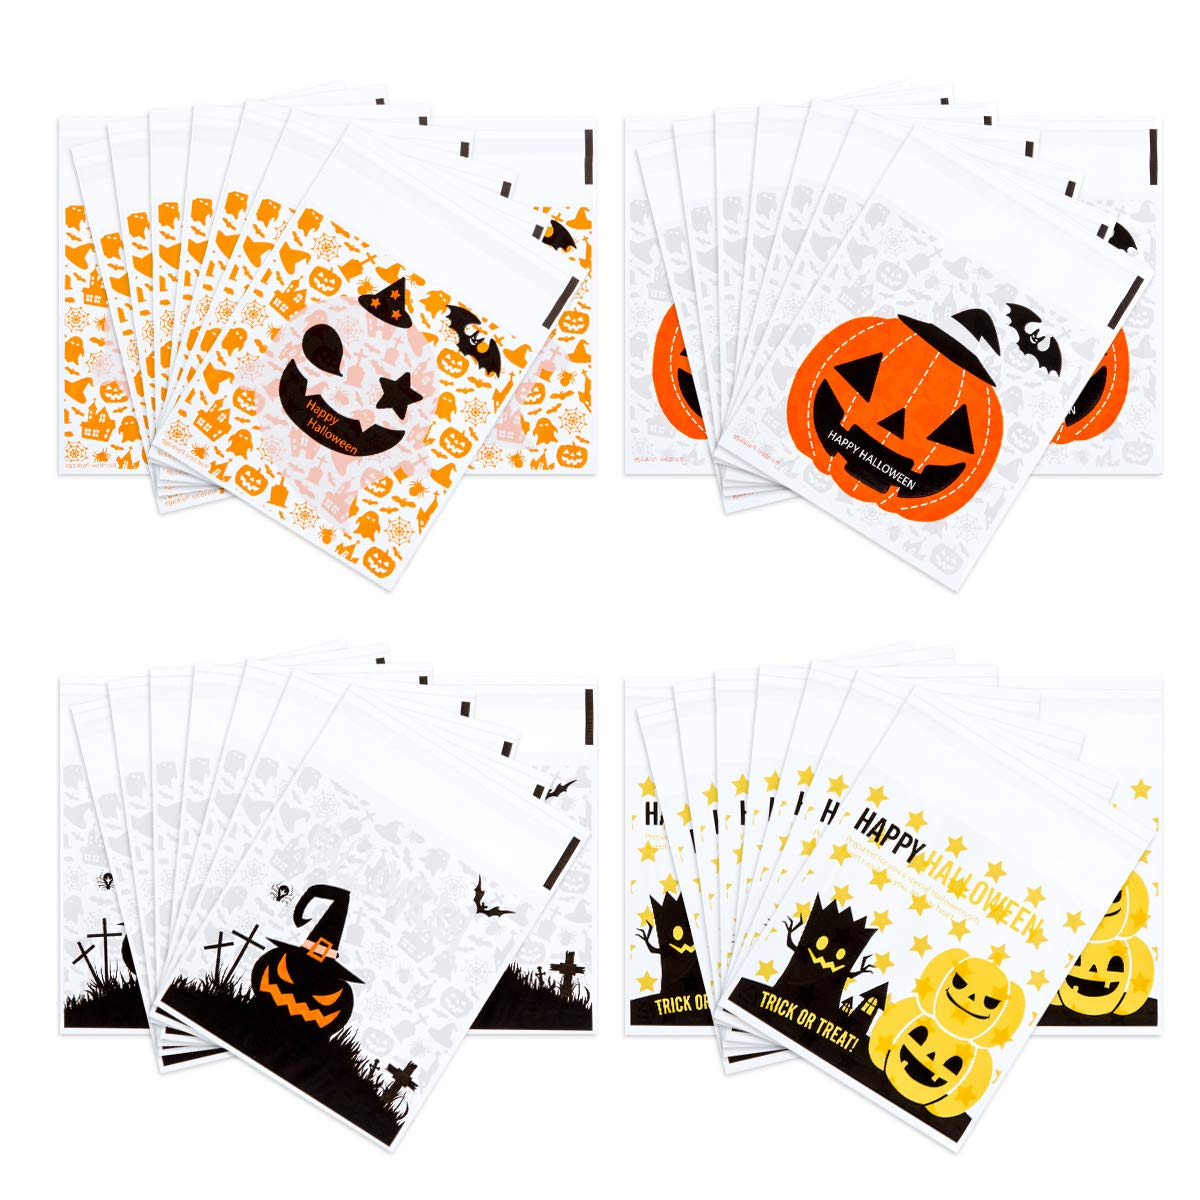 400PCS Halloween Self Adhesive Candy Bags Clear Cellophane Bags 4 Different Style Trick or Treat Bag for Cookie Bakery Biscuit Snacks Dessert Homemade Crafts